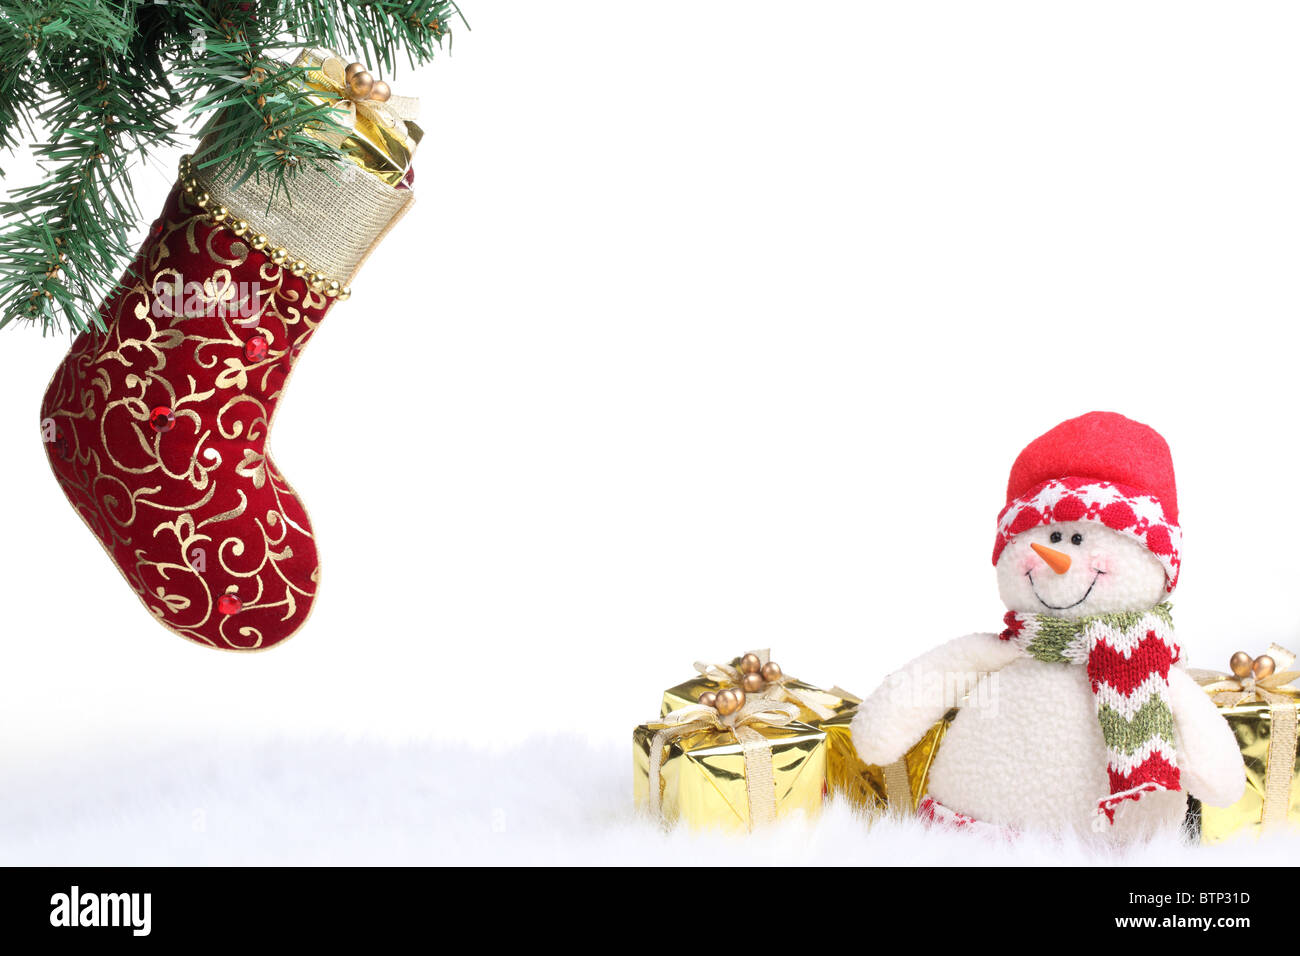 Christmas stocking and snowman with gifts on white background. - Stock Image